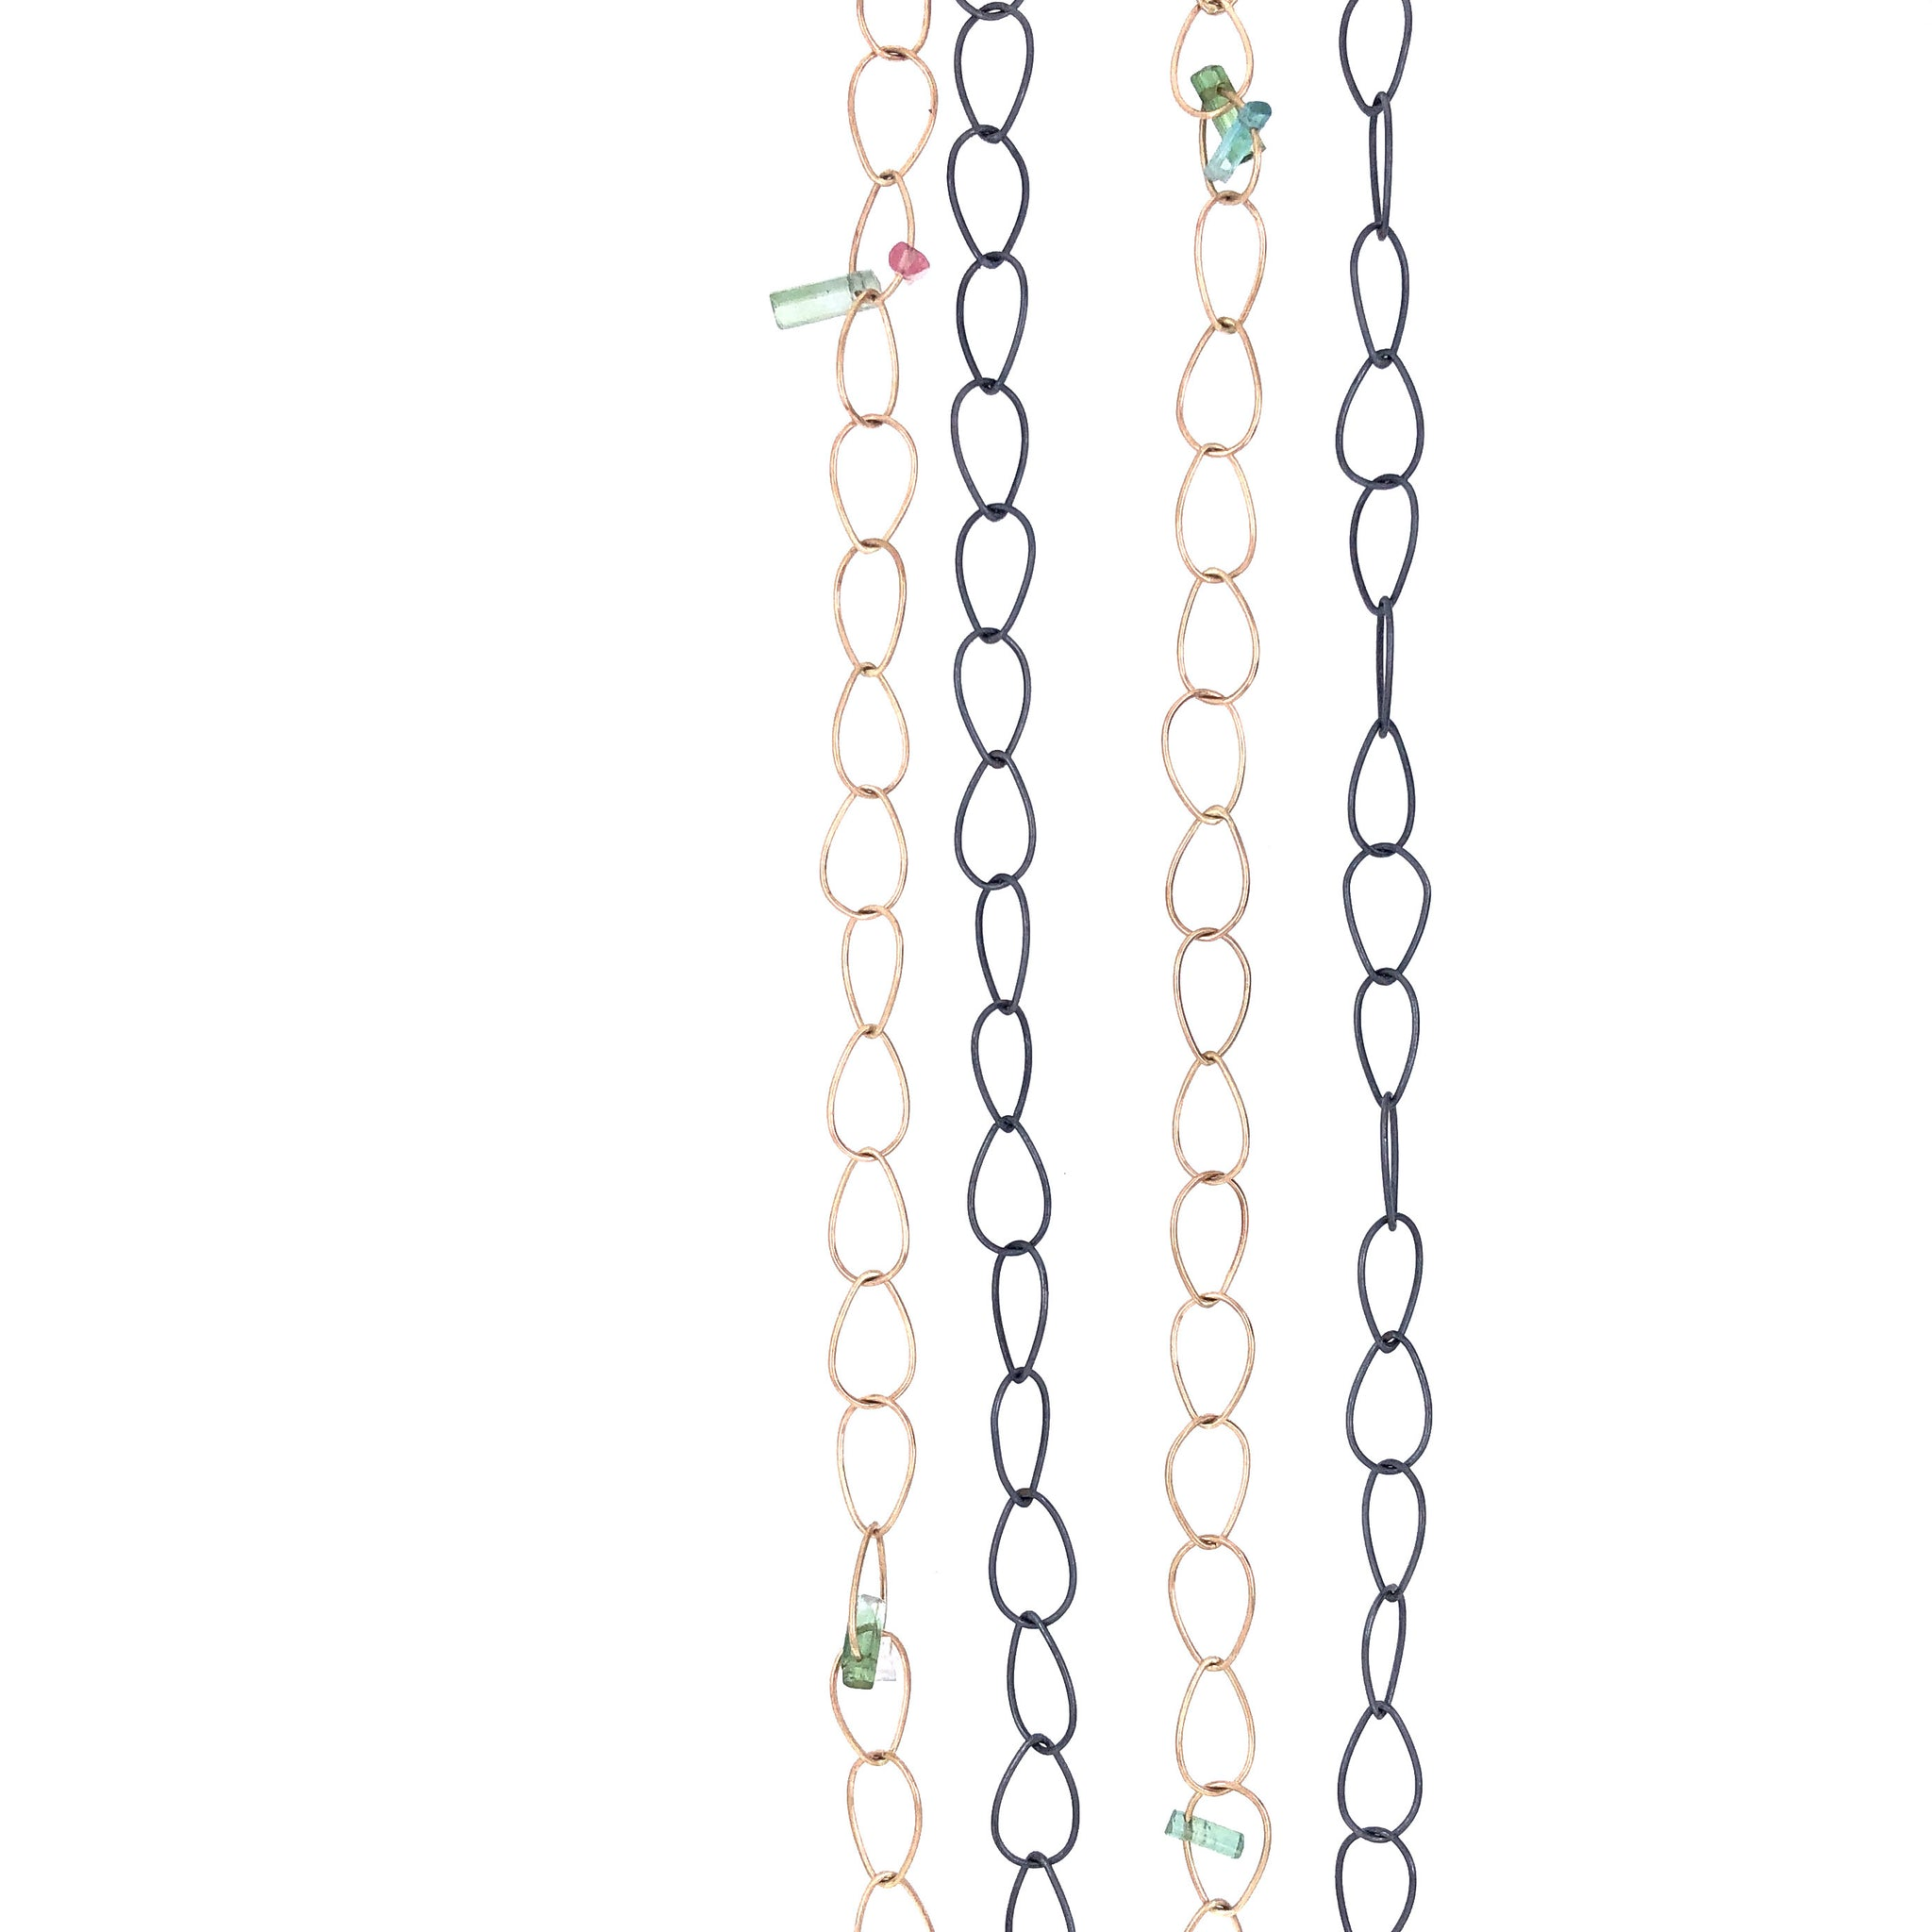 Mixed Metals Pear Link Chain Necklace with Tourmaline, Handmade 14k Gold